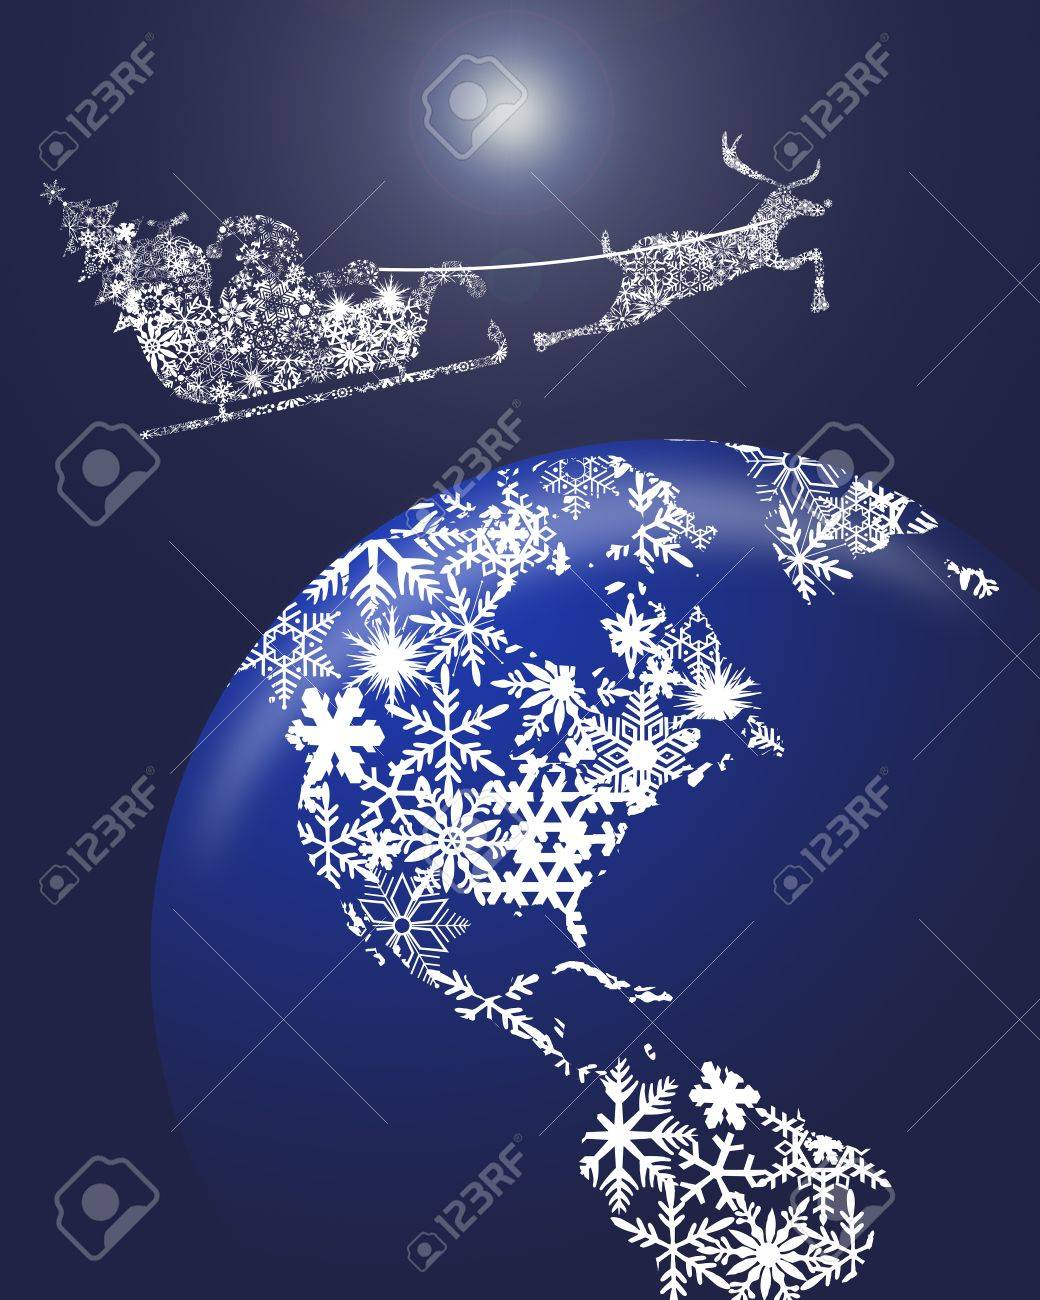 hight resolution of christmas in sleigh with reindeer over earth globe clipart illustration stock illustration 10871725